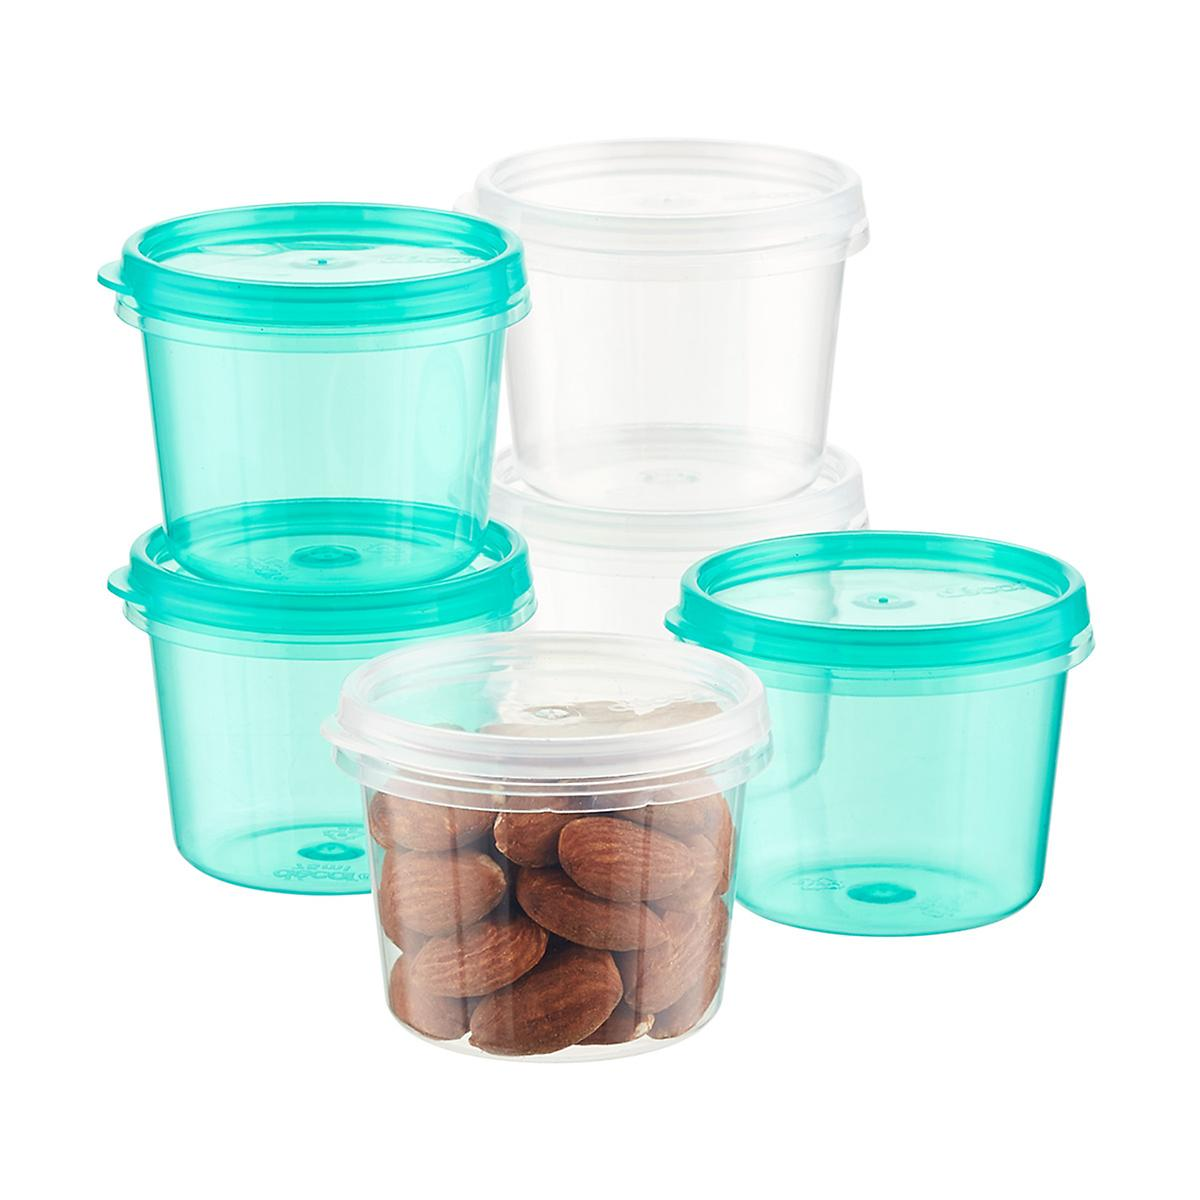 Snack & Dip Tubs | The Container Store